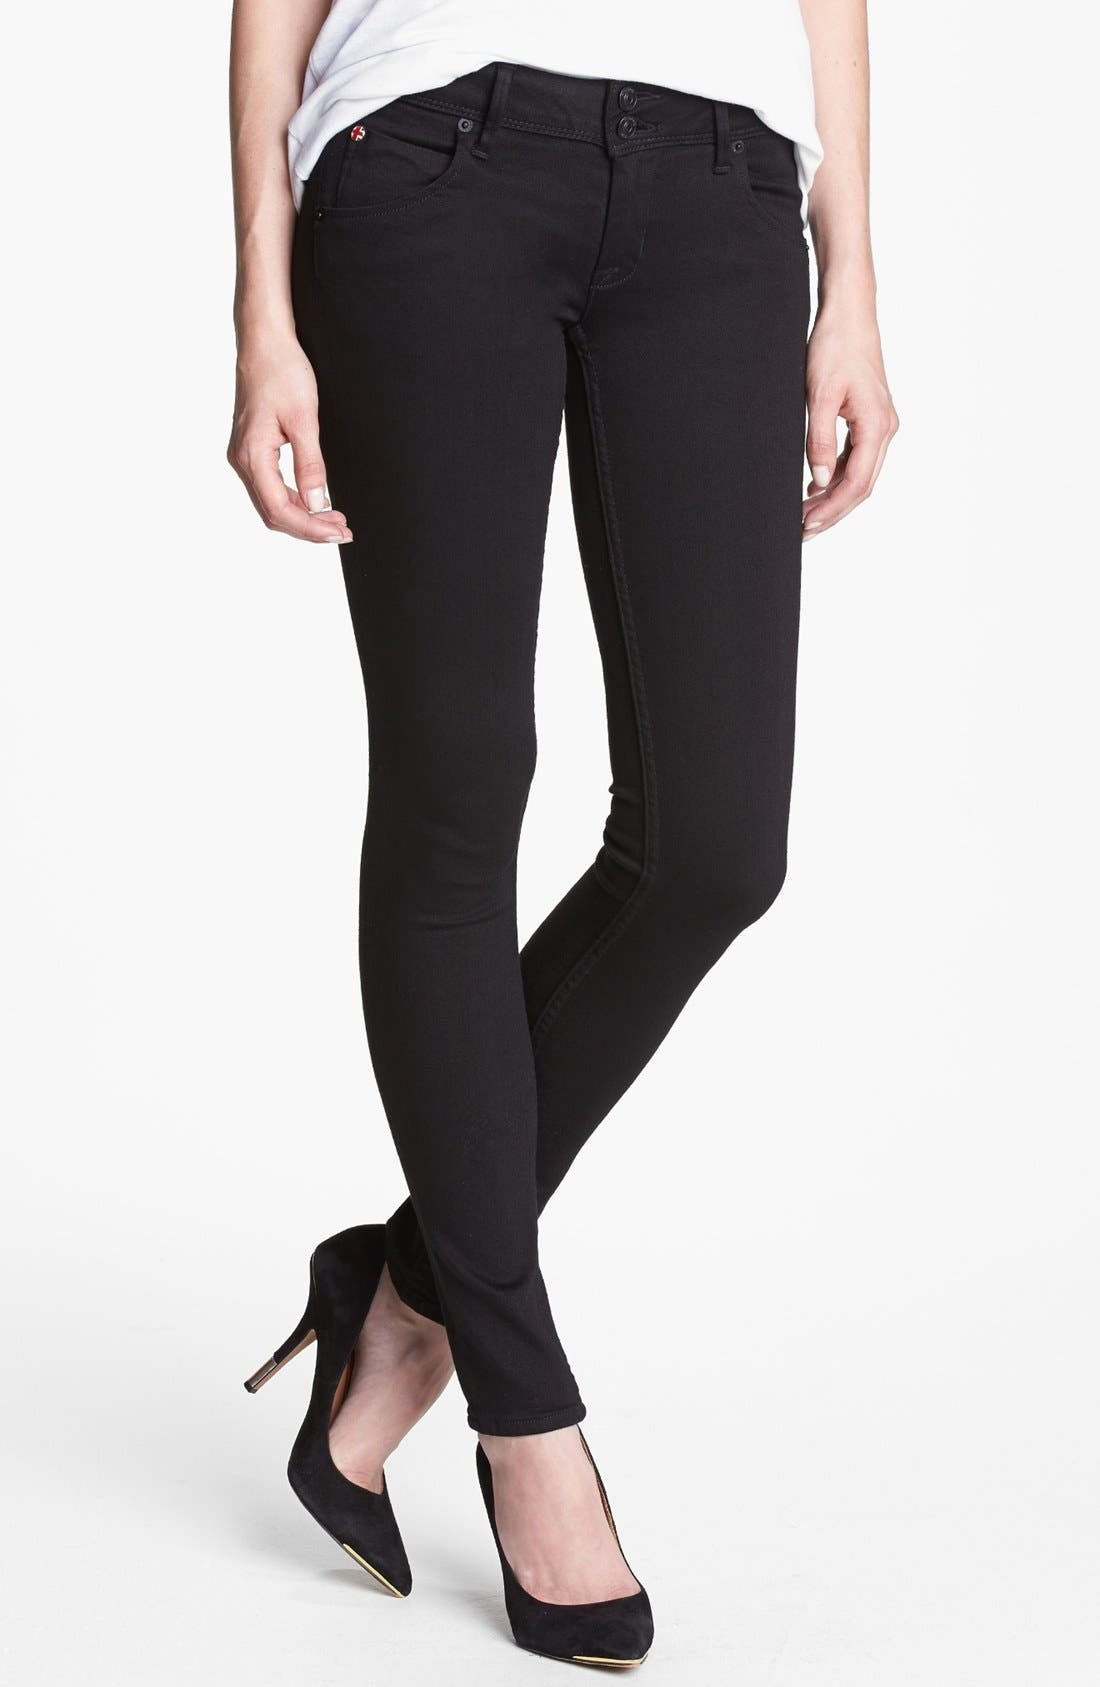 Alternate Image 1 Selected - Hudson Jeans 'Collin' Skinny Jeans (Black)